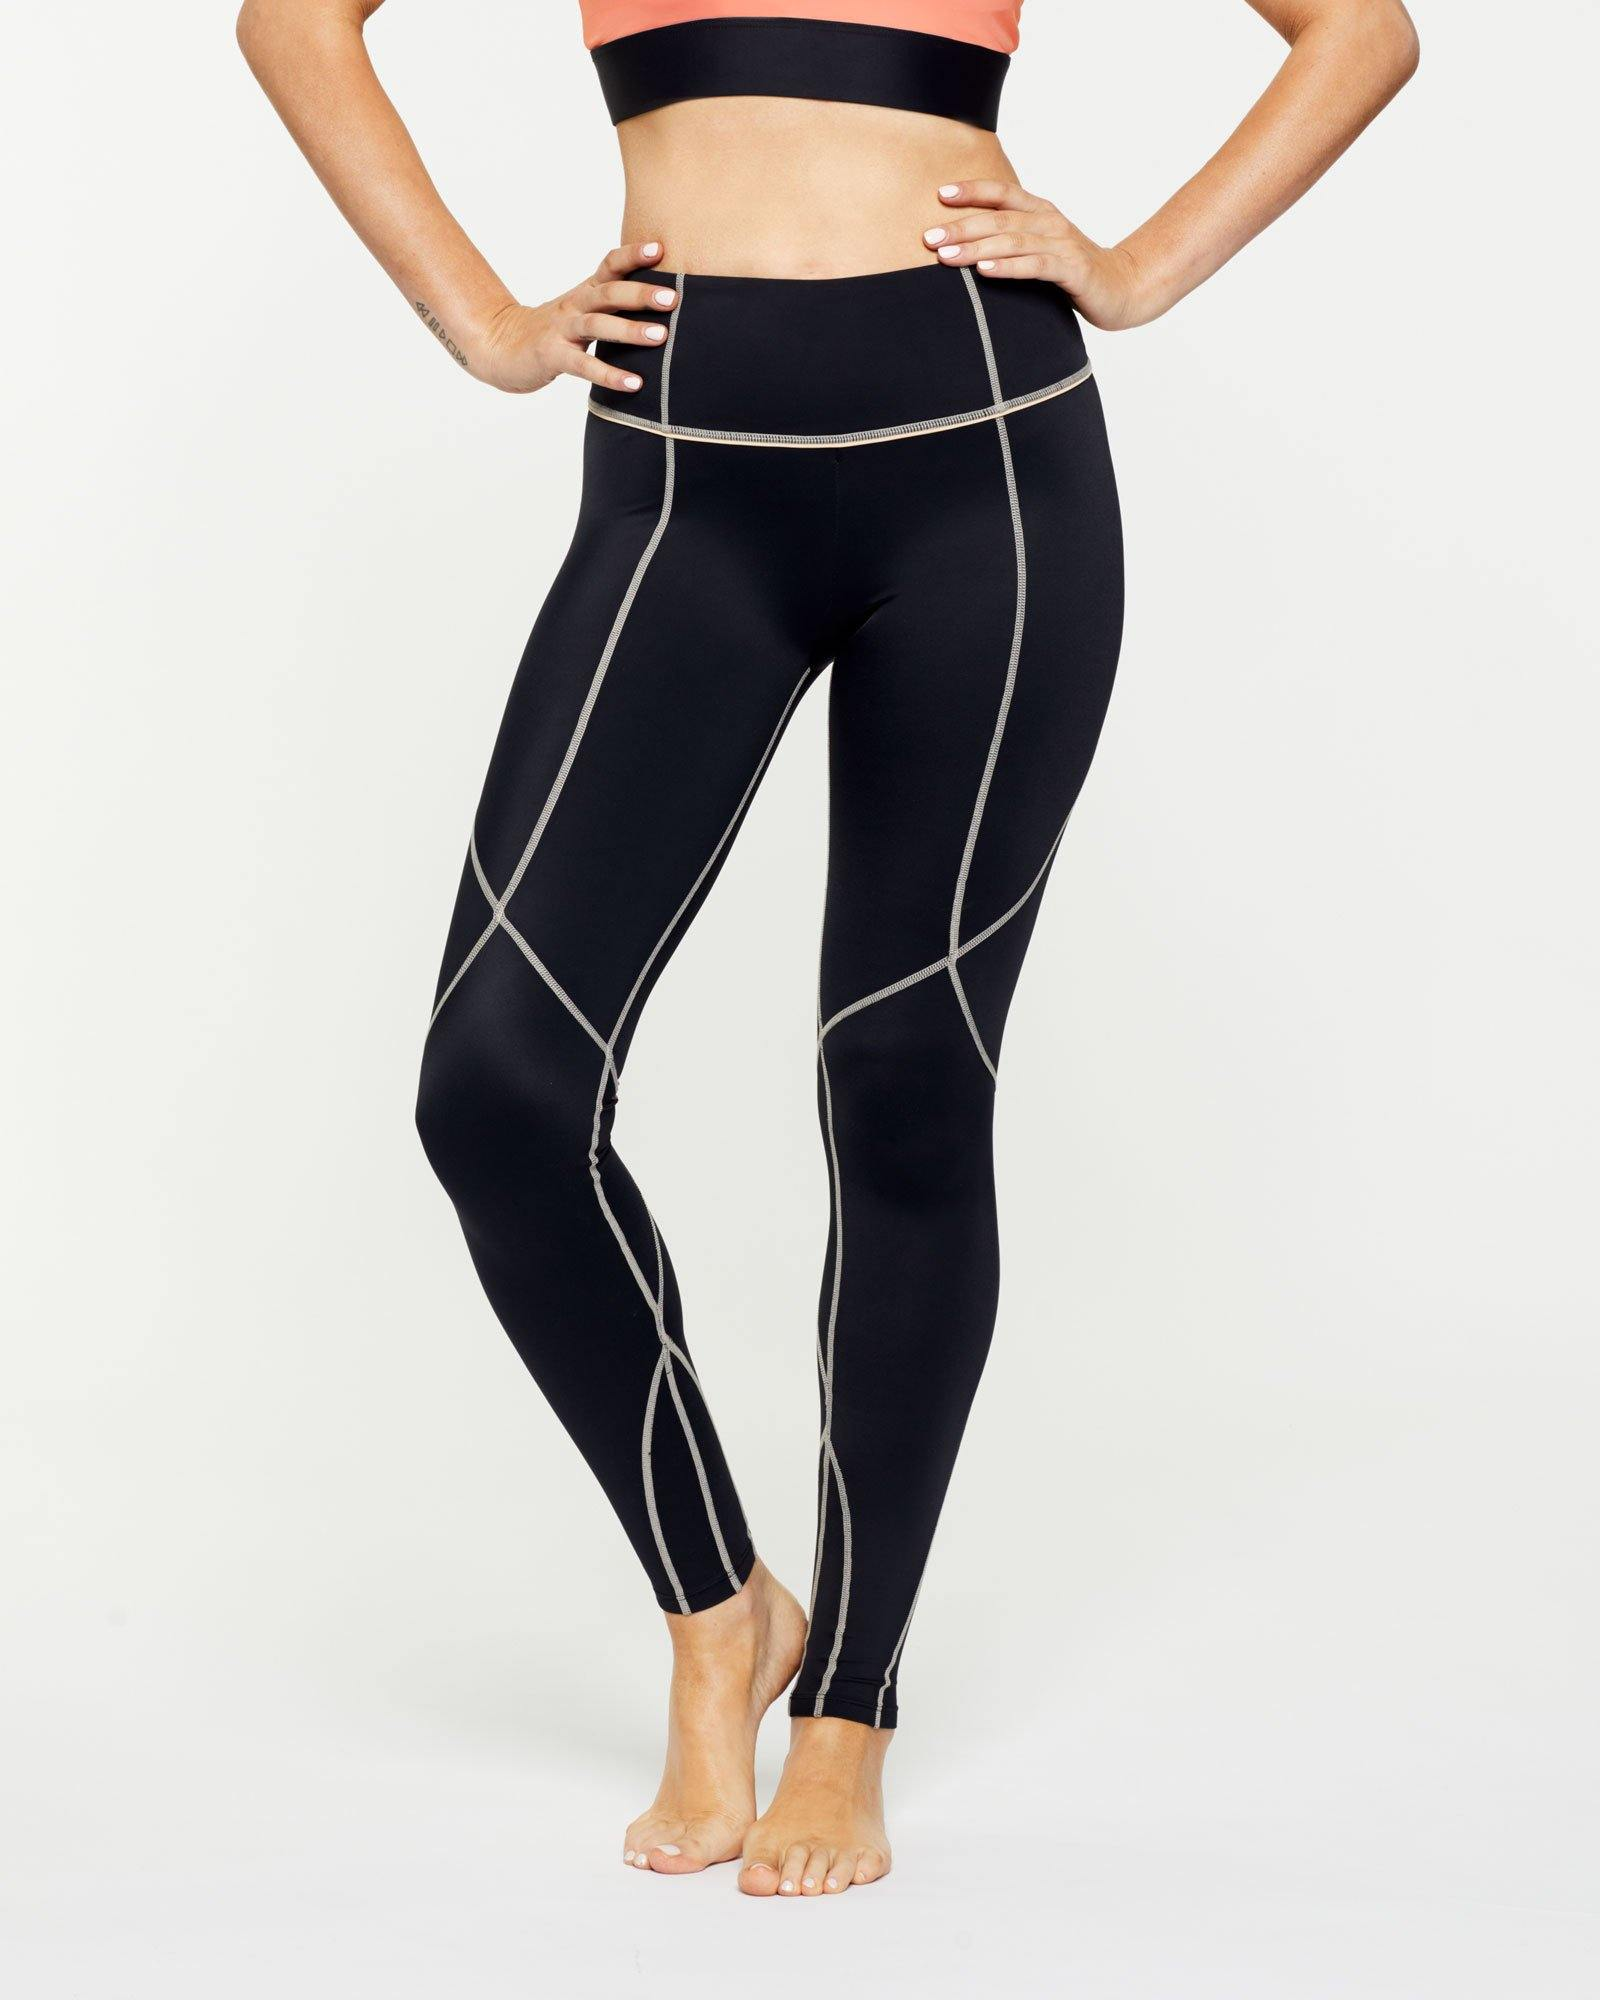 Warrior Vastus mid waist full length legging with contrast stitching, front view